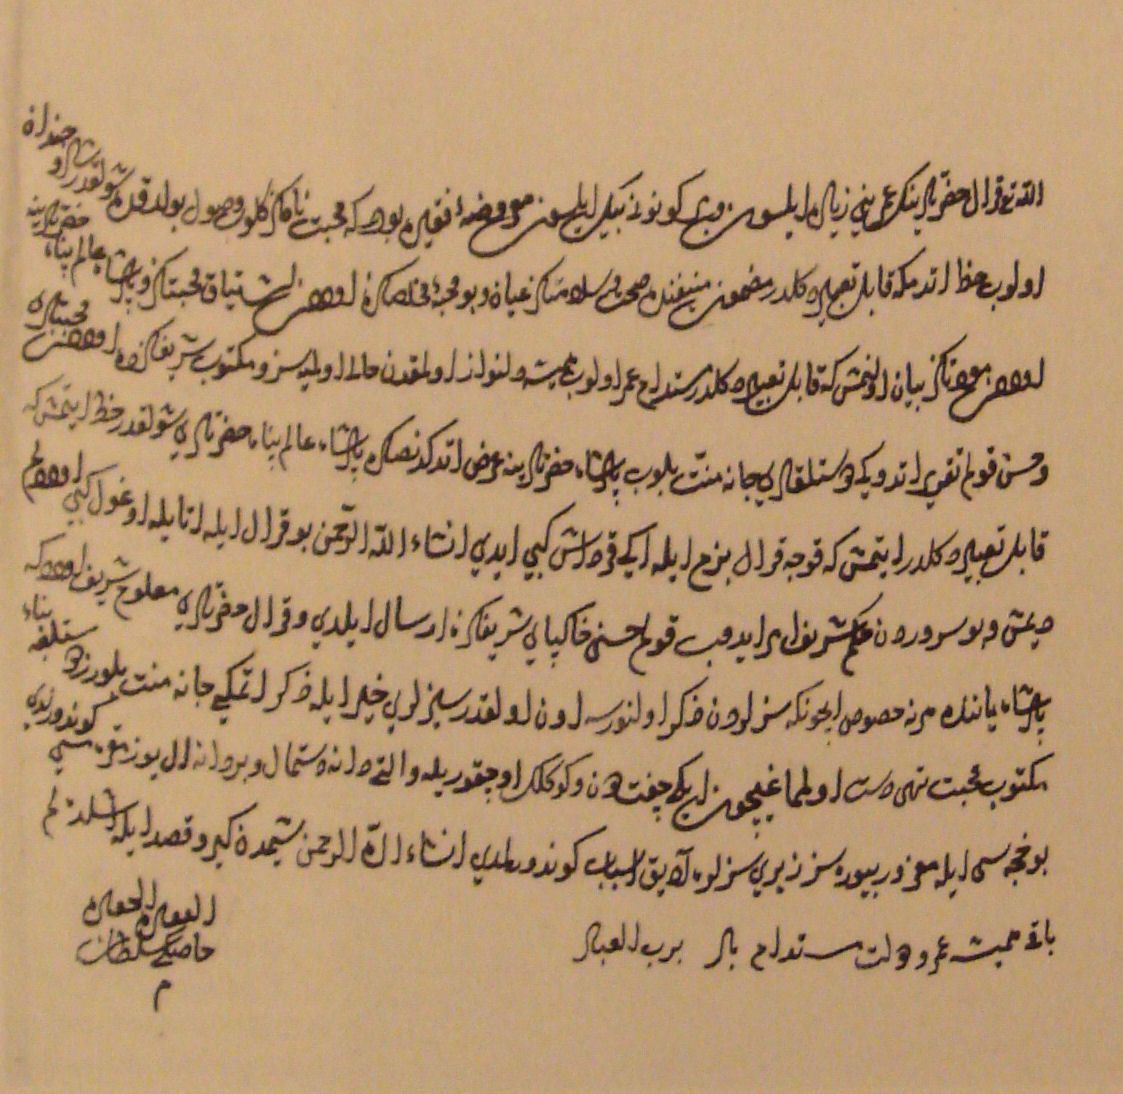 File:Letter of Roxelane to Sigismond Auguste complementing him for his